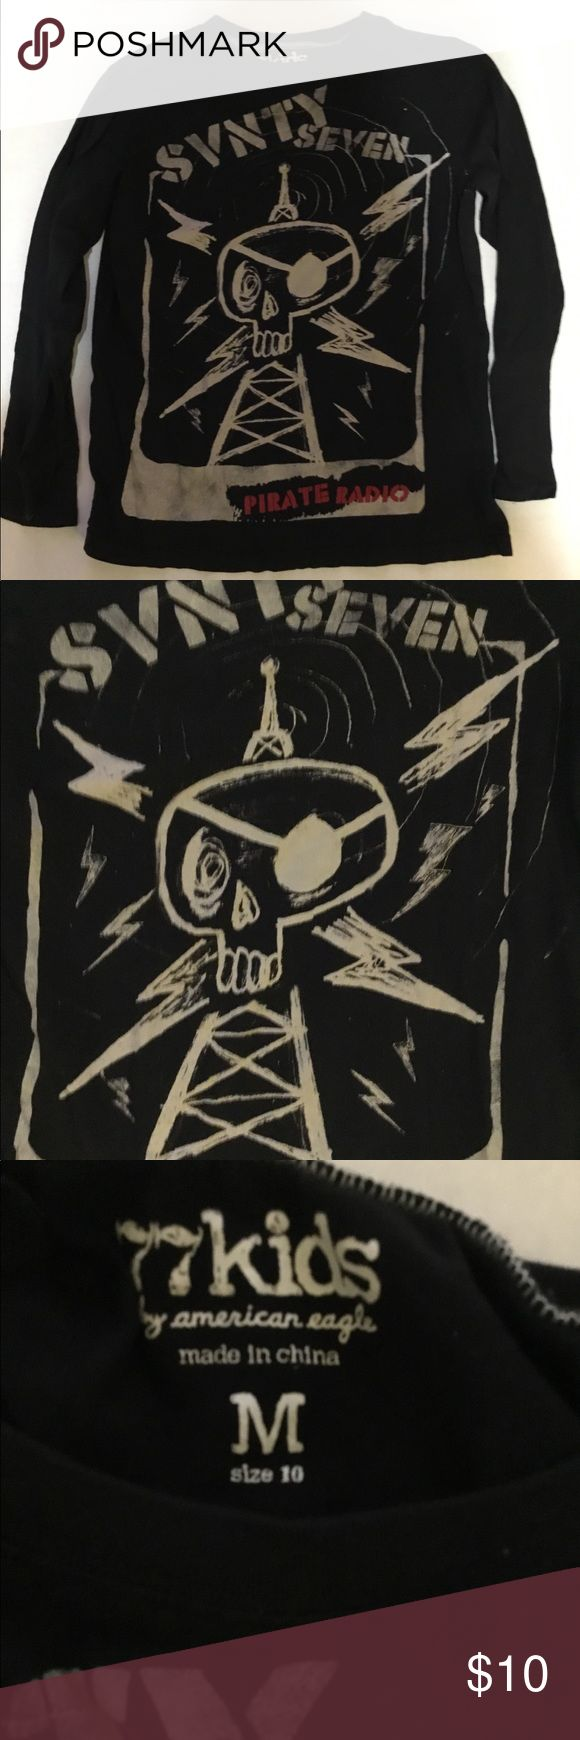 77 Kids long sleeve black t shirt pirate radio Med 77 Kids long sleeve black t shirt pirate radio sz Medium (10). Nice lightweight long sleeve tee from 77 Kids (American Eagle).  Minimal color loss great graphic! 77kids Shirts & Tops Tees - Long Sleeve